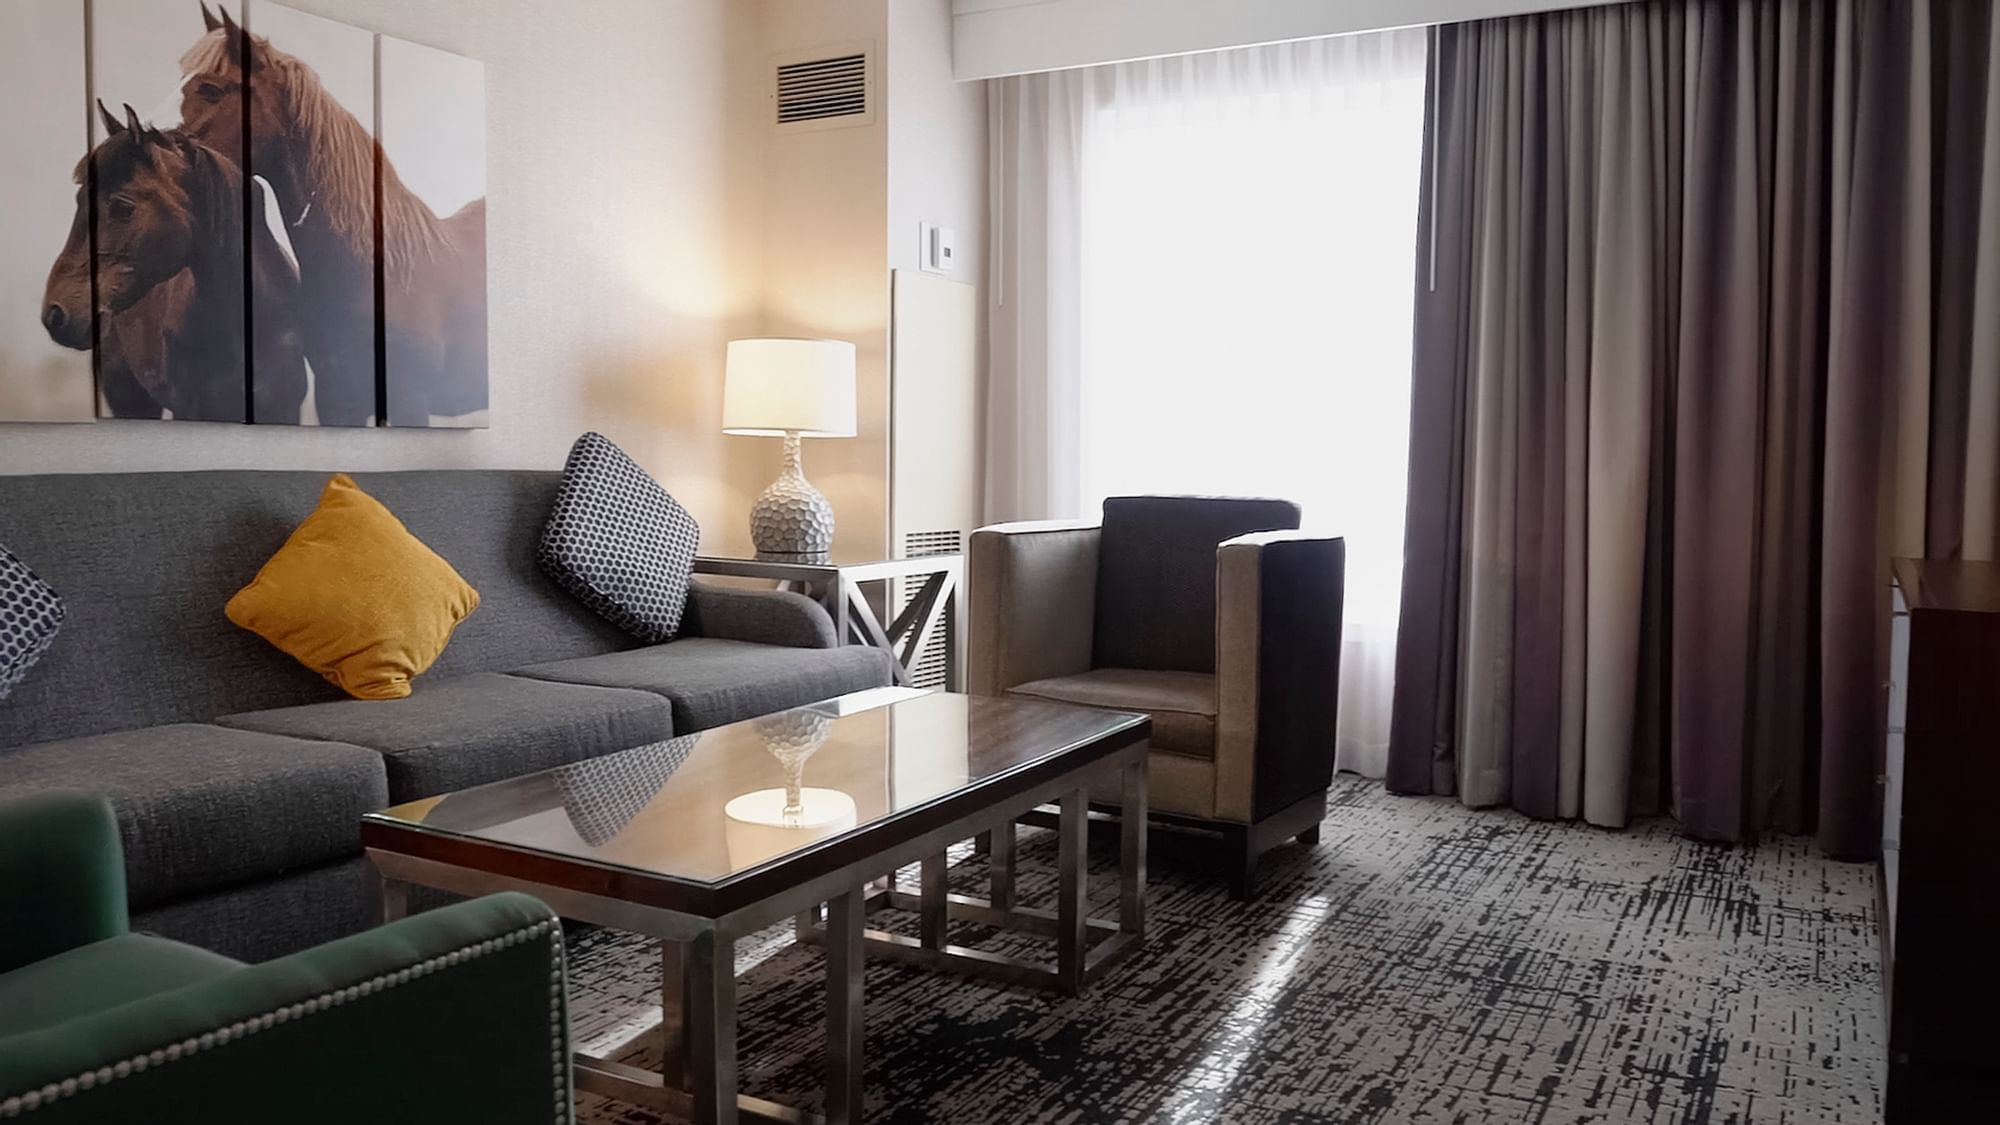 a couch and chairs in a hotel room